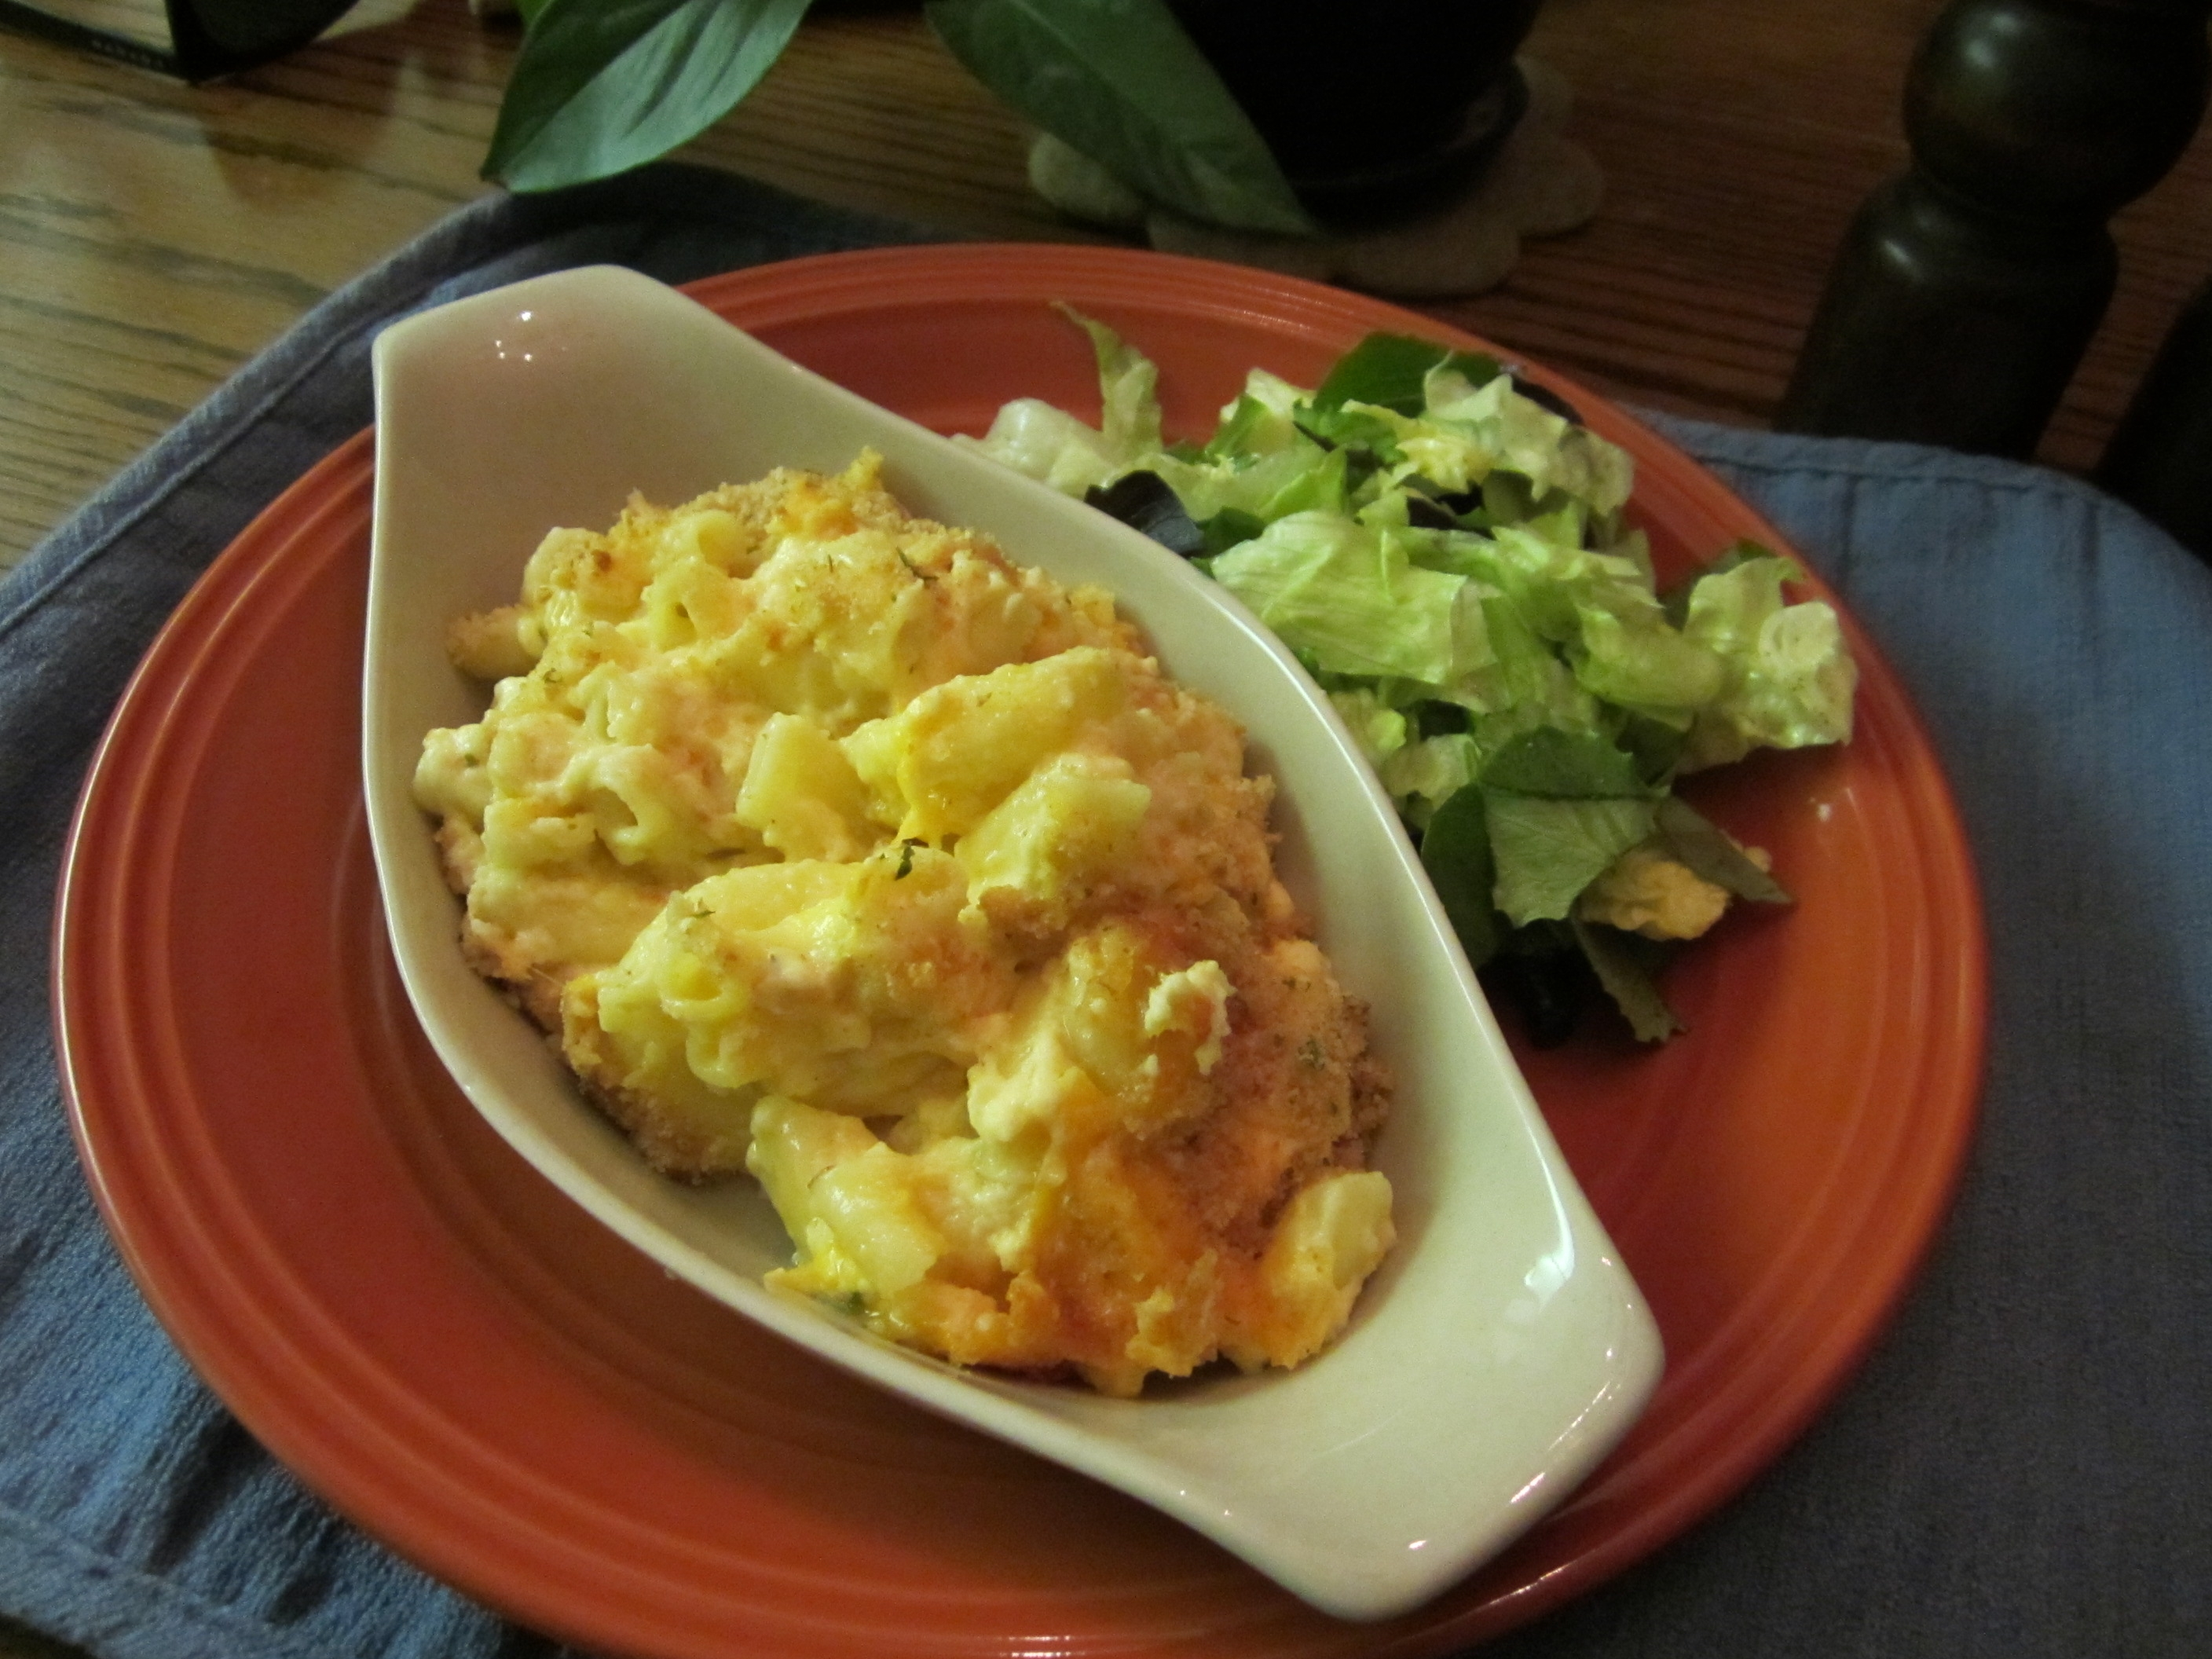 Jeanne's Mac and Cheese